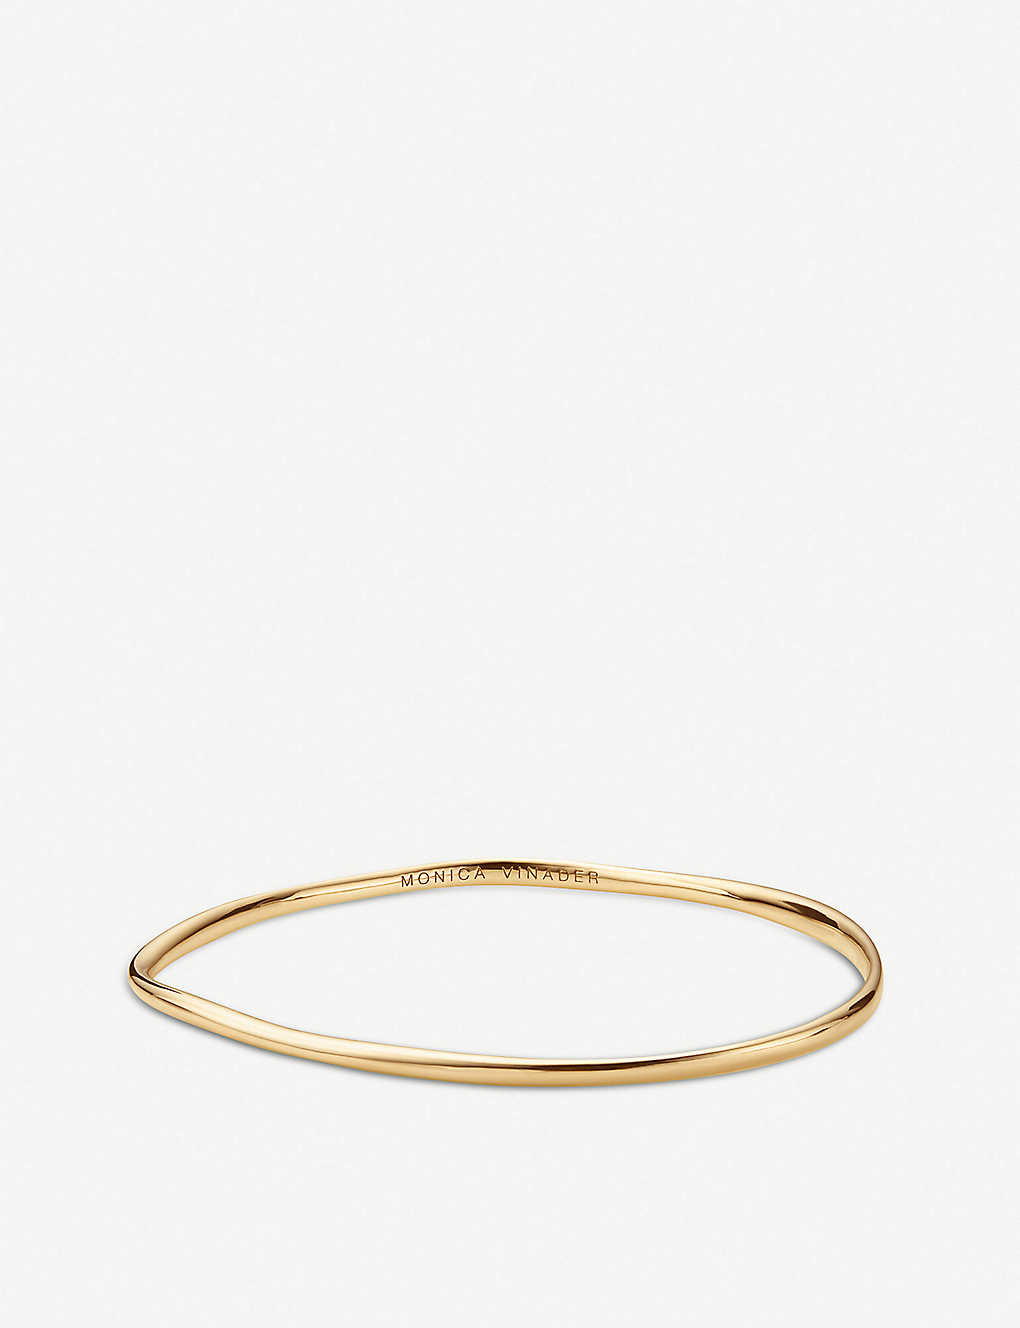 MONICA VINADER: Nura 18ct yellow-gold vermeil on sterling silver reef bracelet